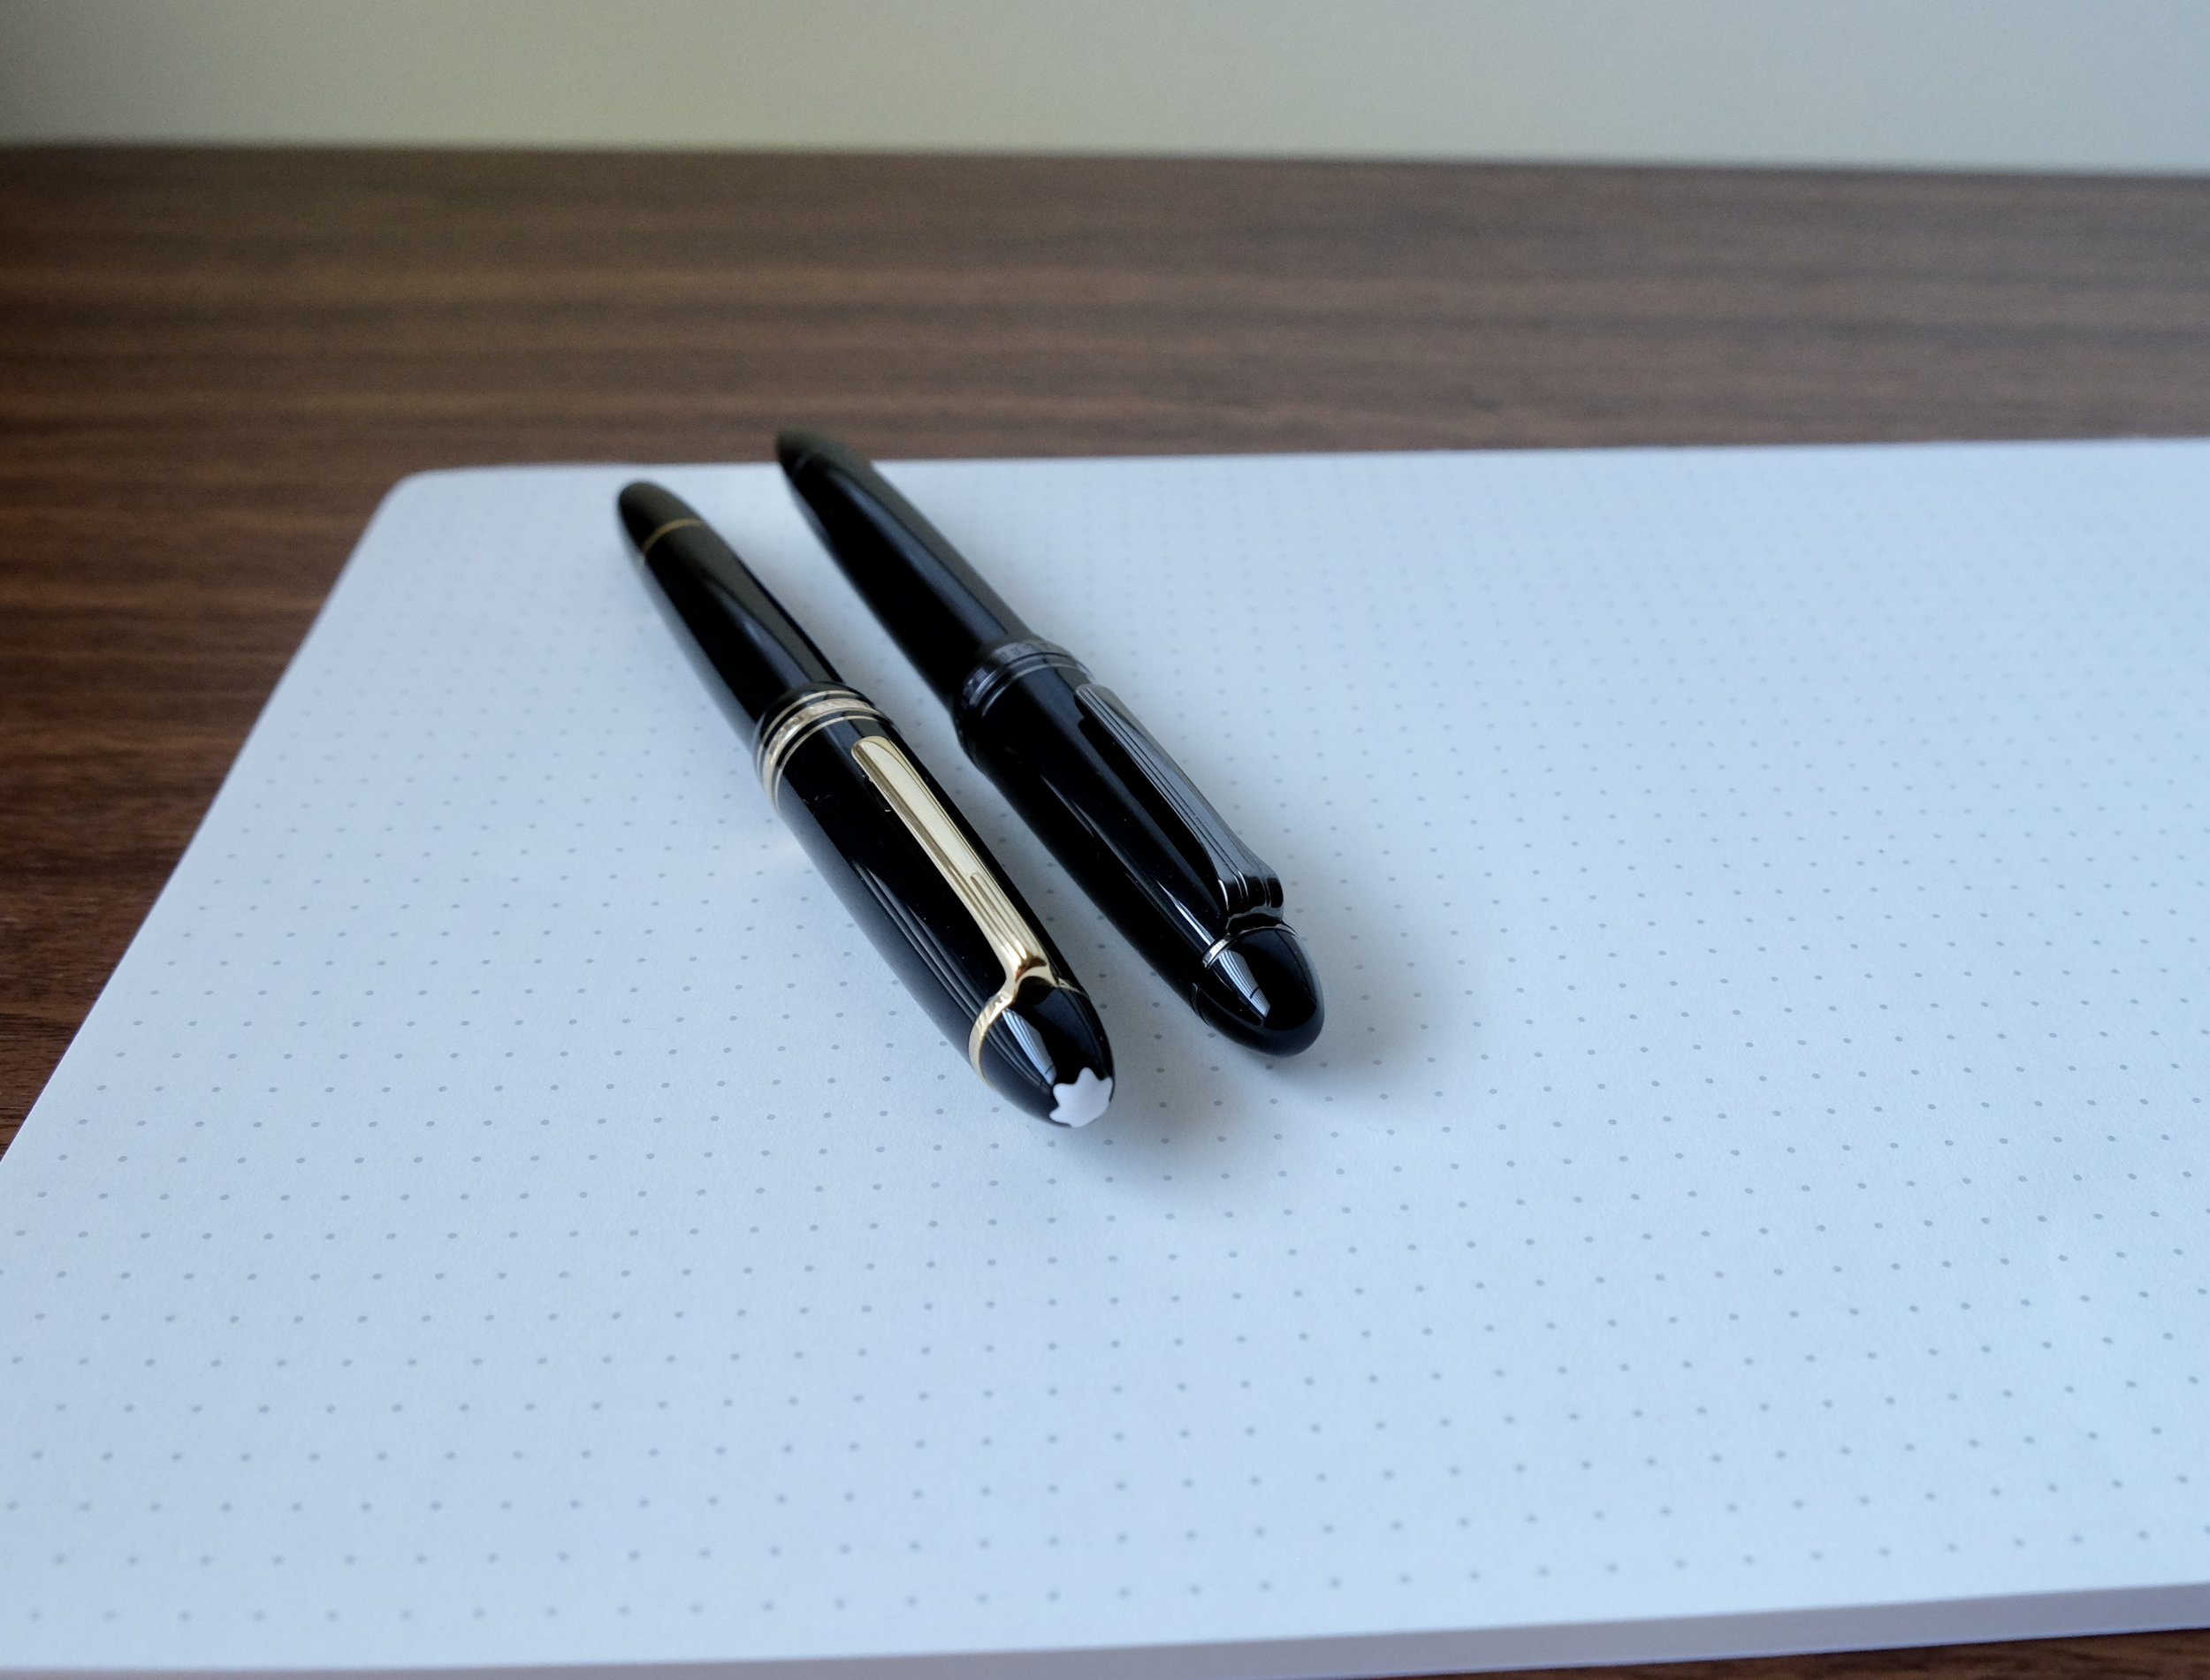 The Sailor 1911 Black Luster compared to a Montblanc 146.